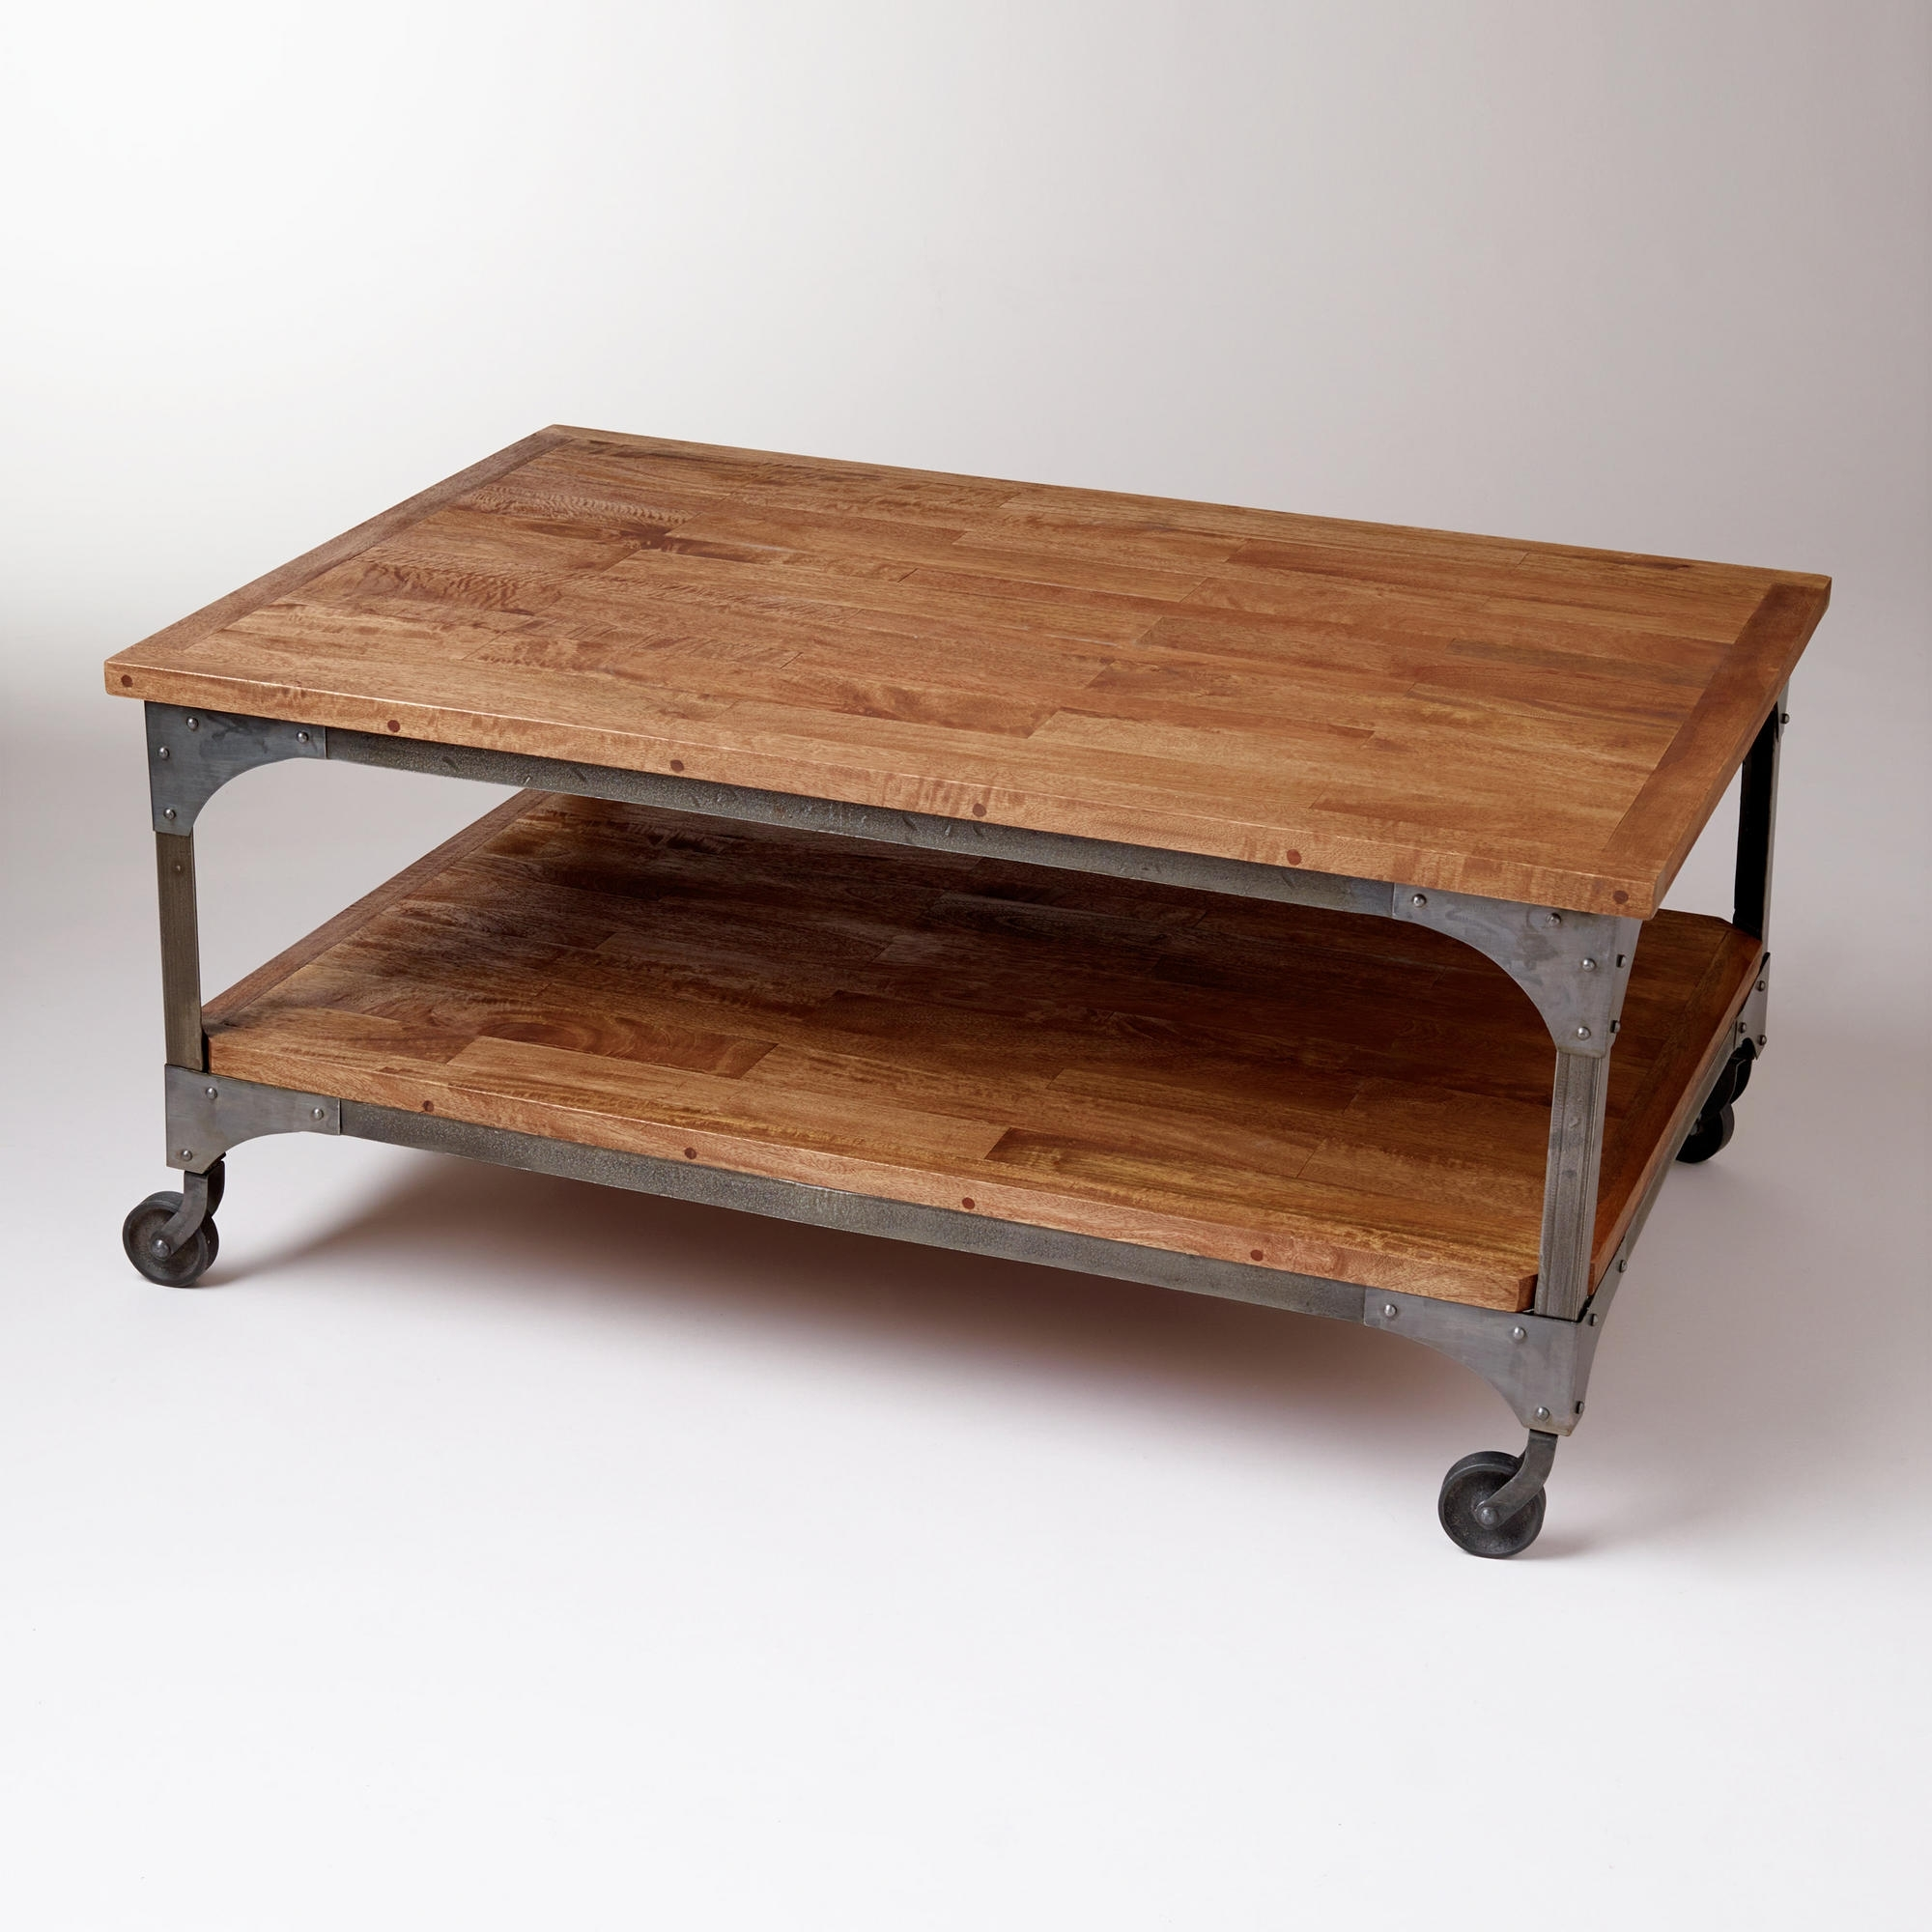 Coffee Table: Remarkable Coffee Tables With Wheels Coffee Table For Most Popular Natural Wheel Coffee Tables (View 4 of 20)